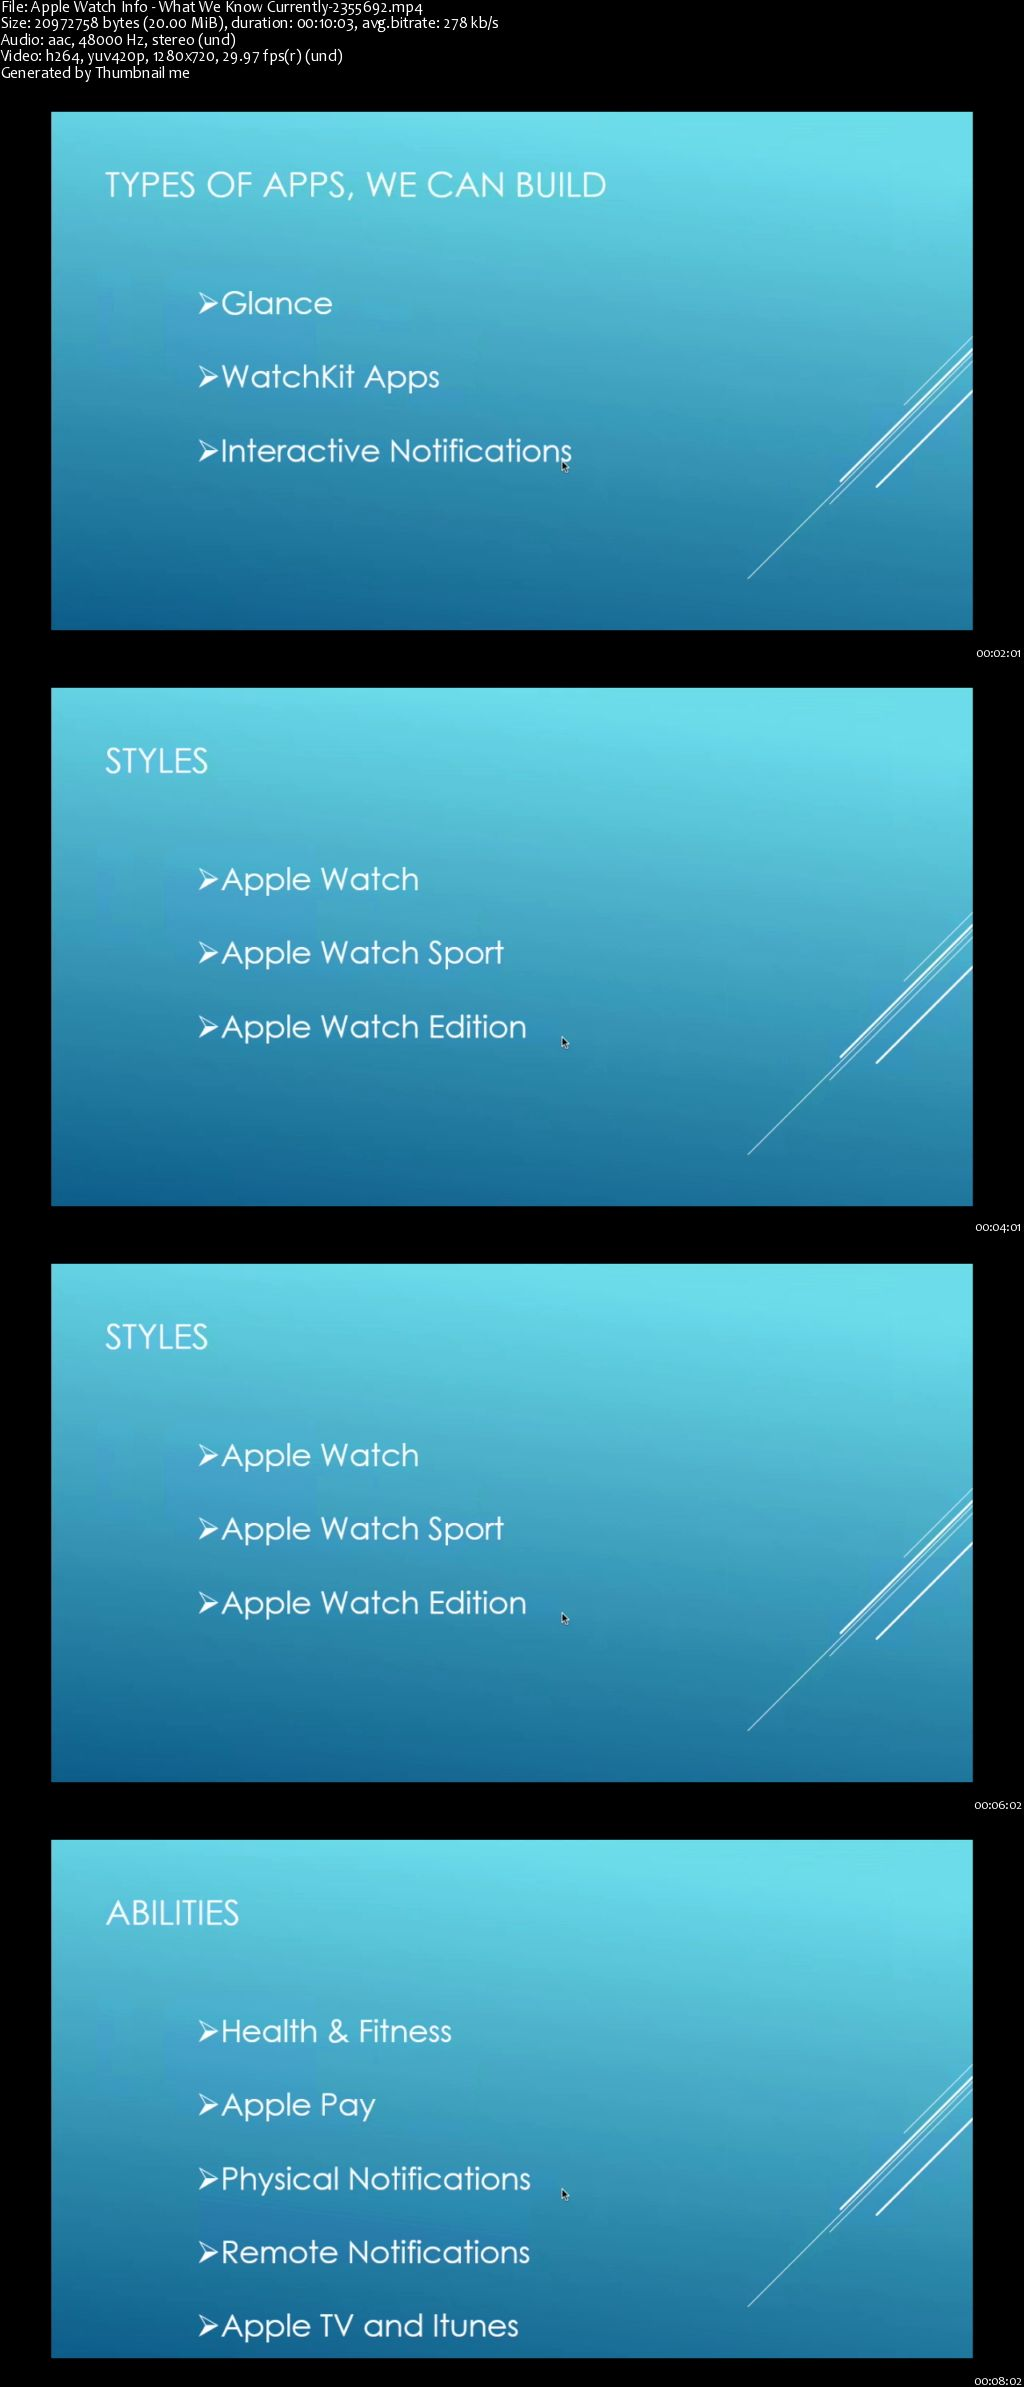 Apple Watch - Learn to Create 5 Apps Using WatchKit